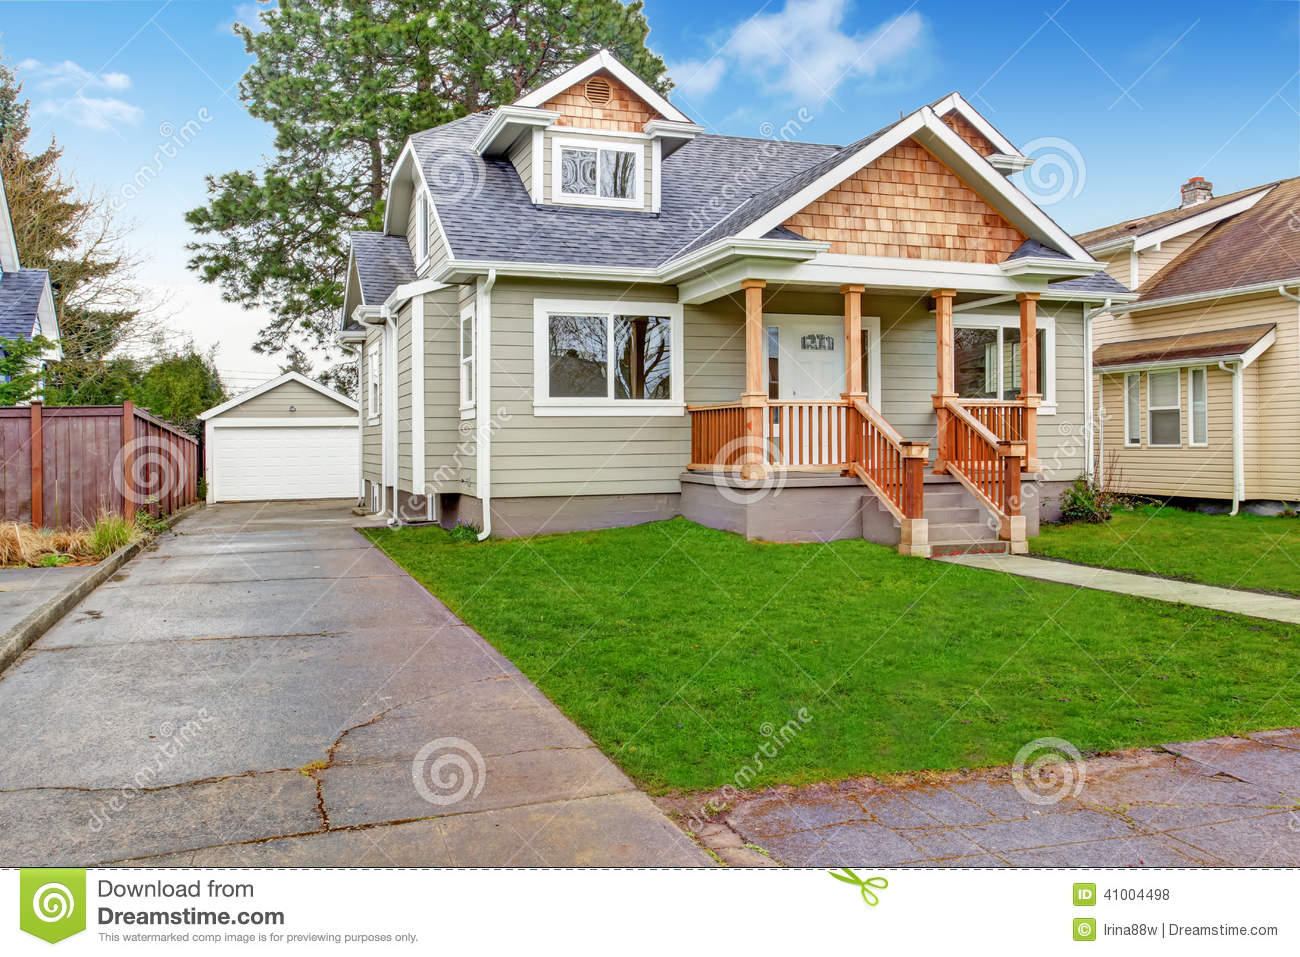 House exterior front porch and garage view stock photo for House design outside view